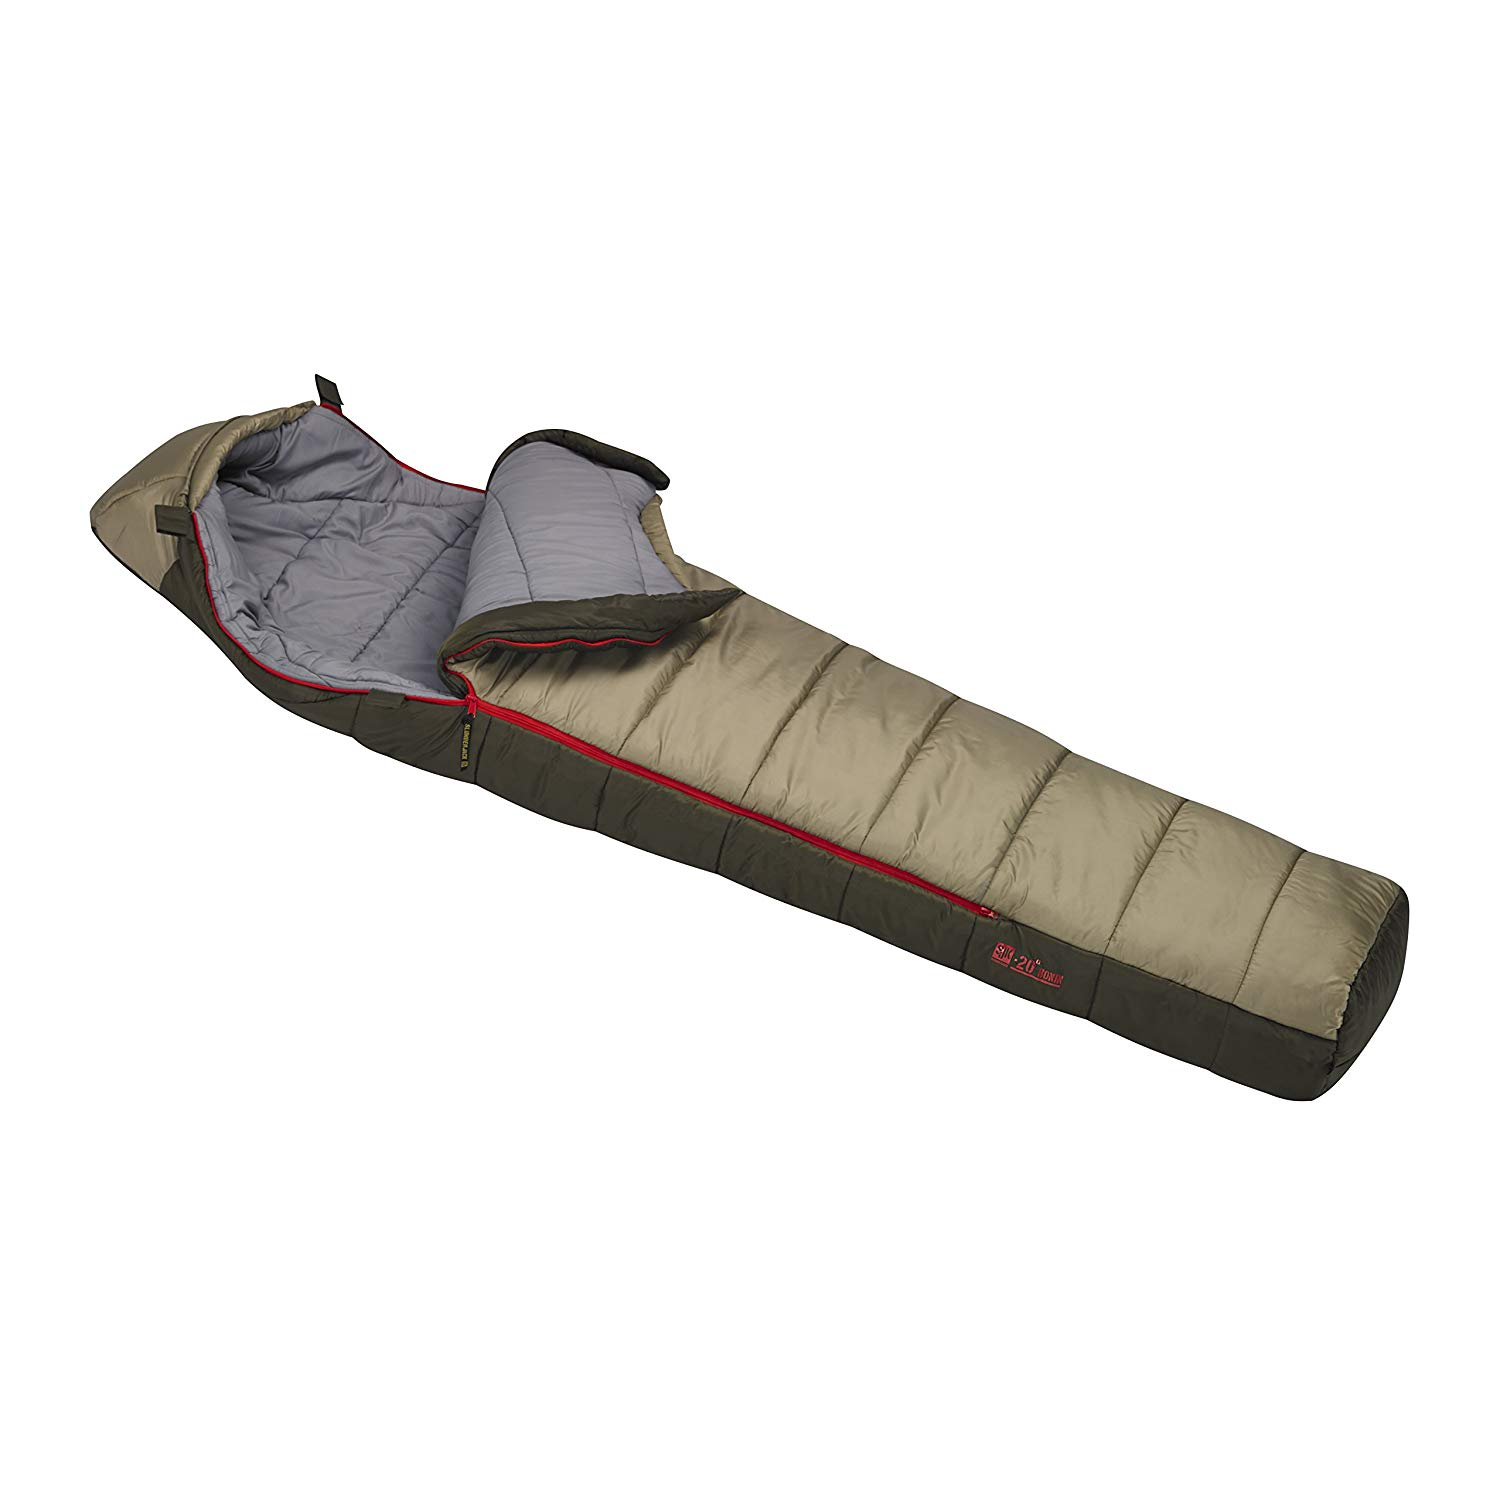 An image of Slumberjack Ronin 51722215DZ Men's 20 Degree Polyester Sleeping Bag